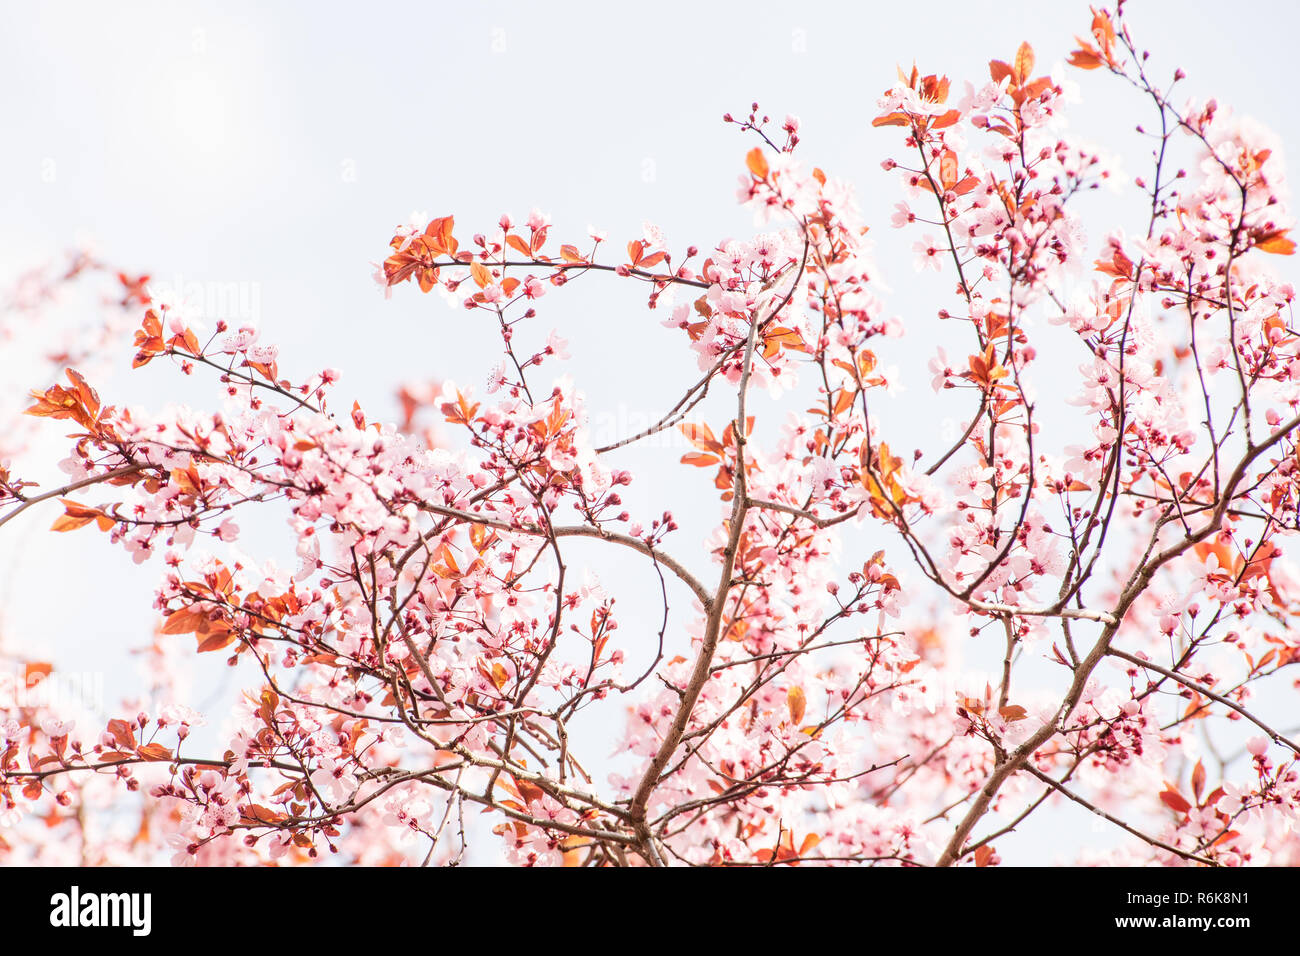 blooming spring tree on a light background - Stock Image